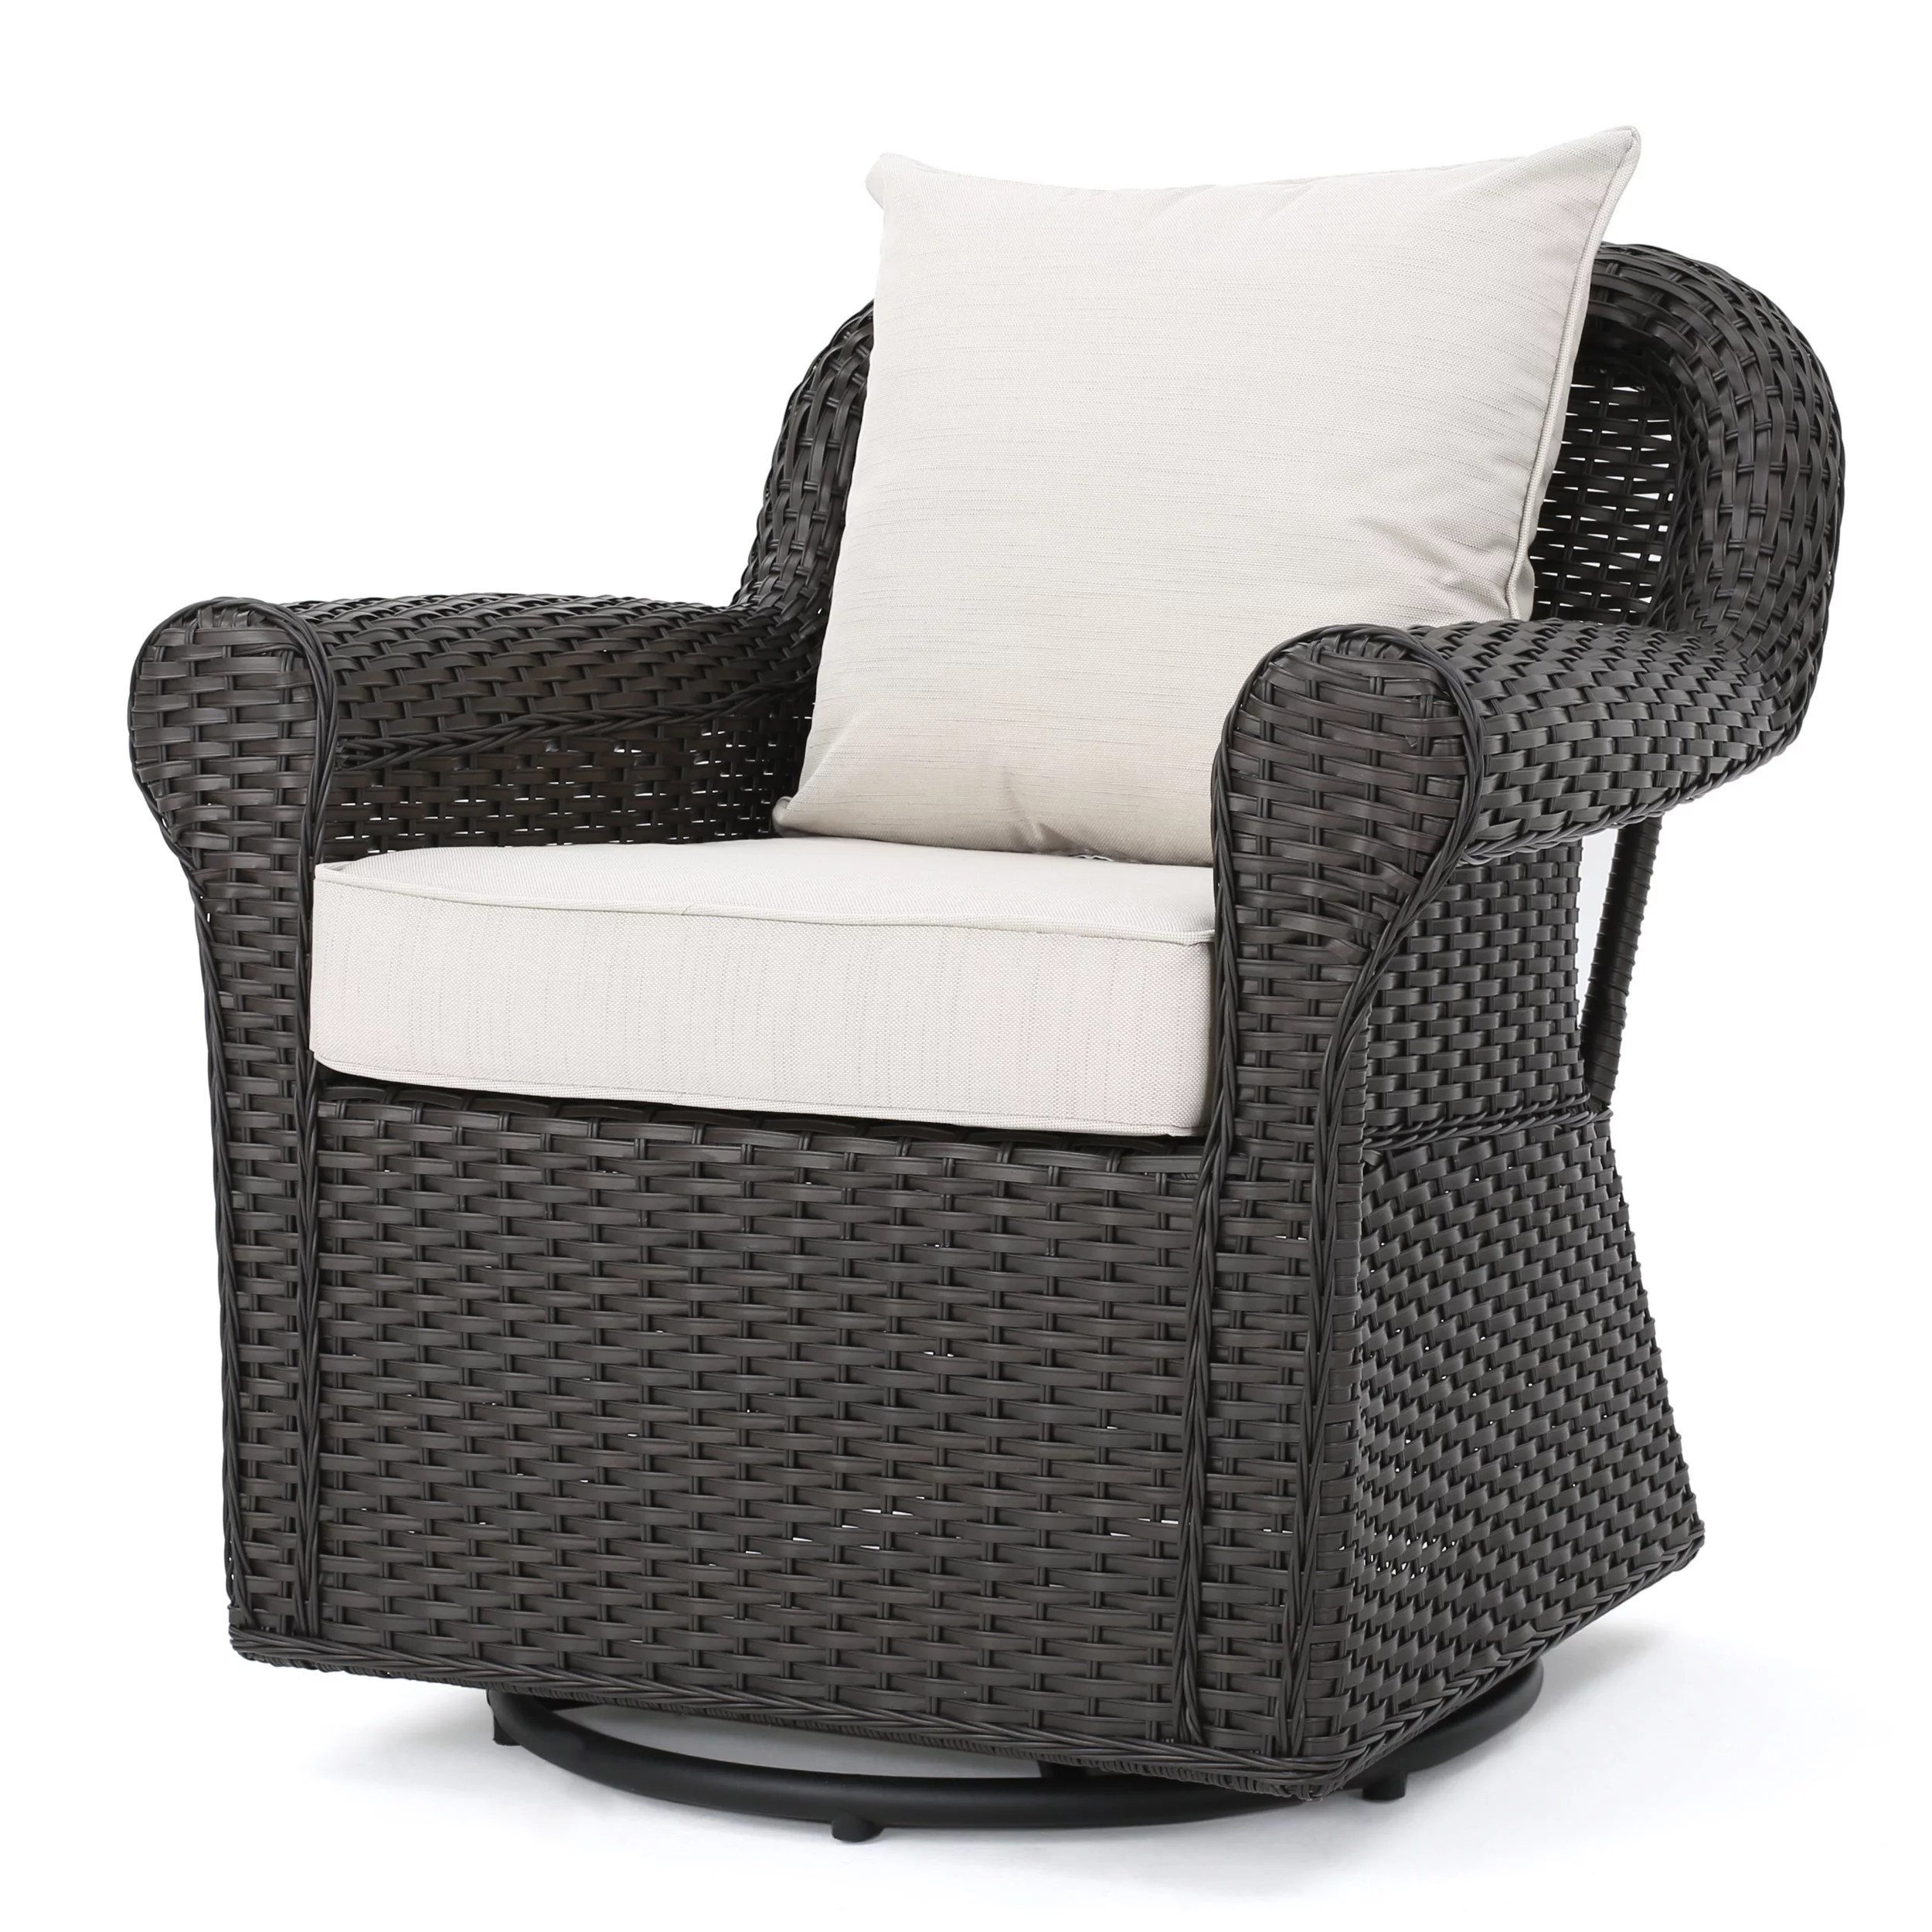 Wicker Swivel Chair Admiral Outdoor Dark Brown Wicker Swivel Rocking Chair With Cushions Beige